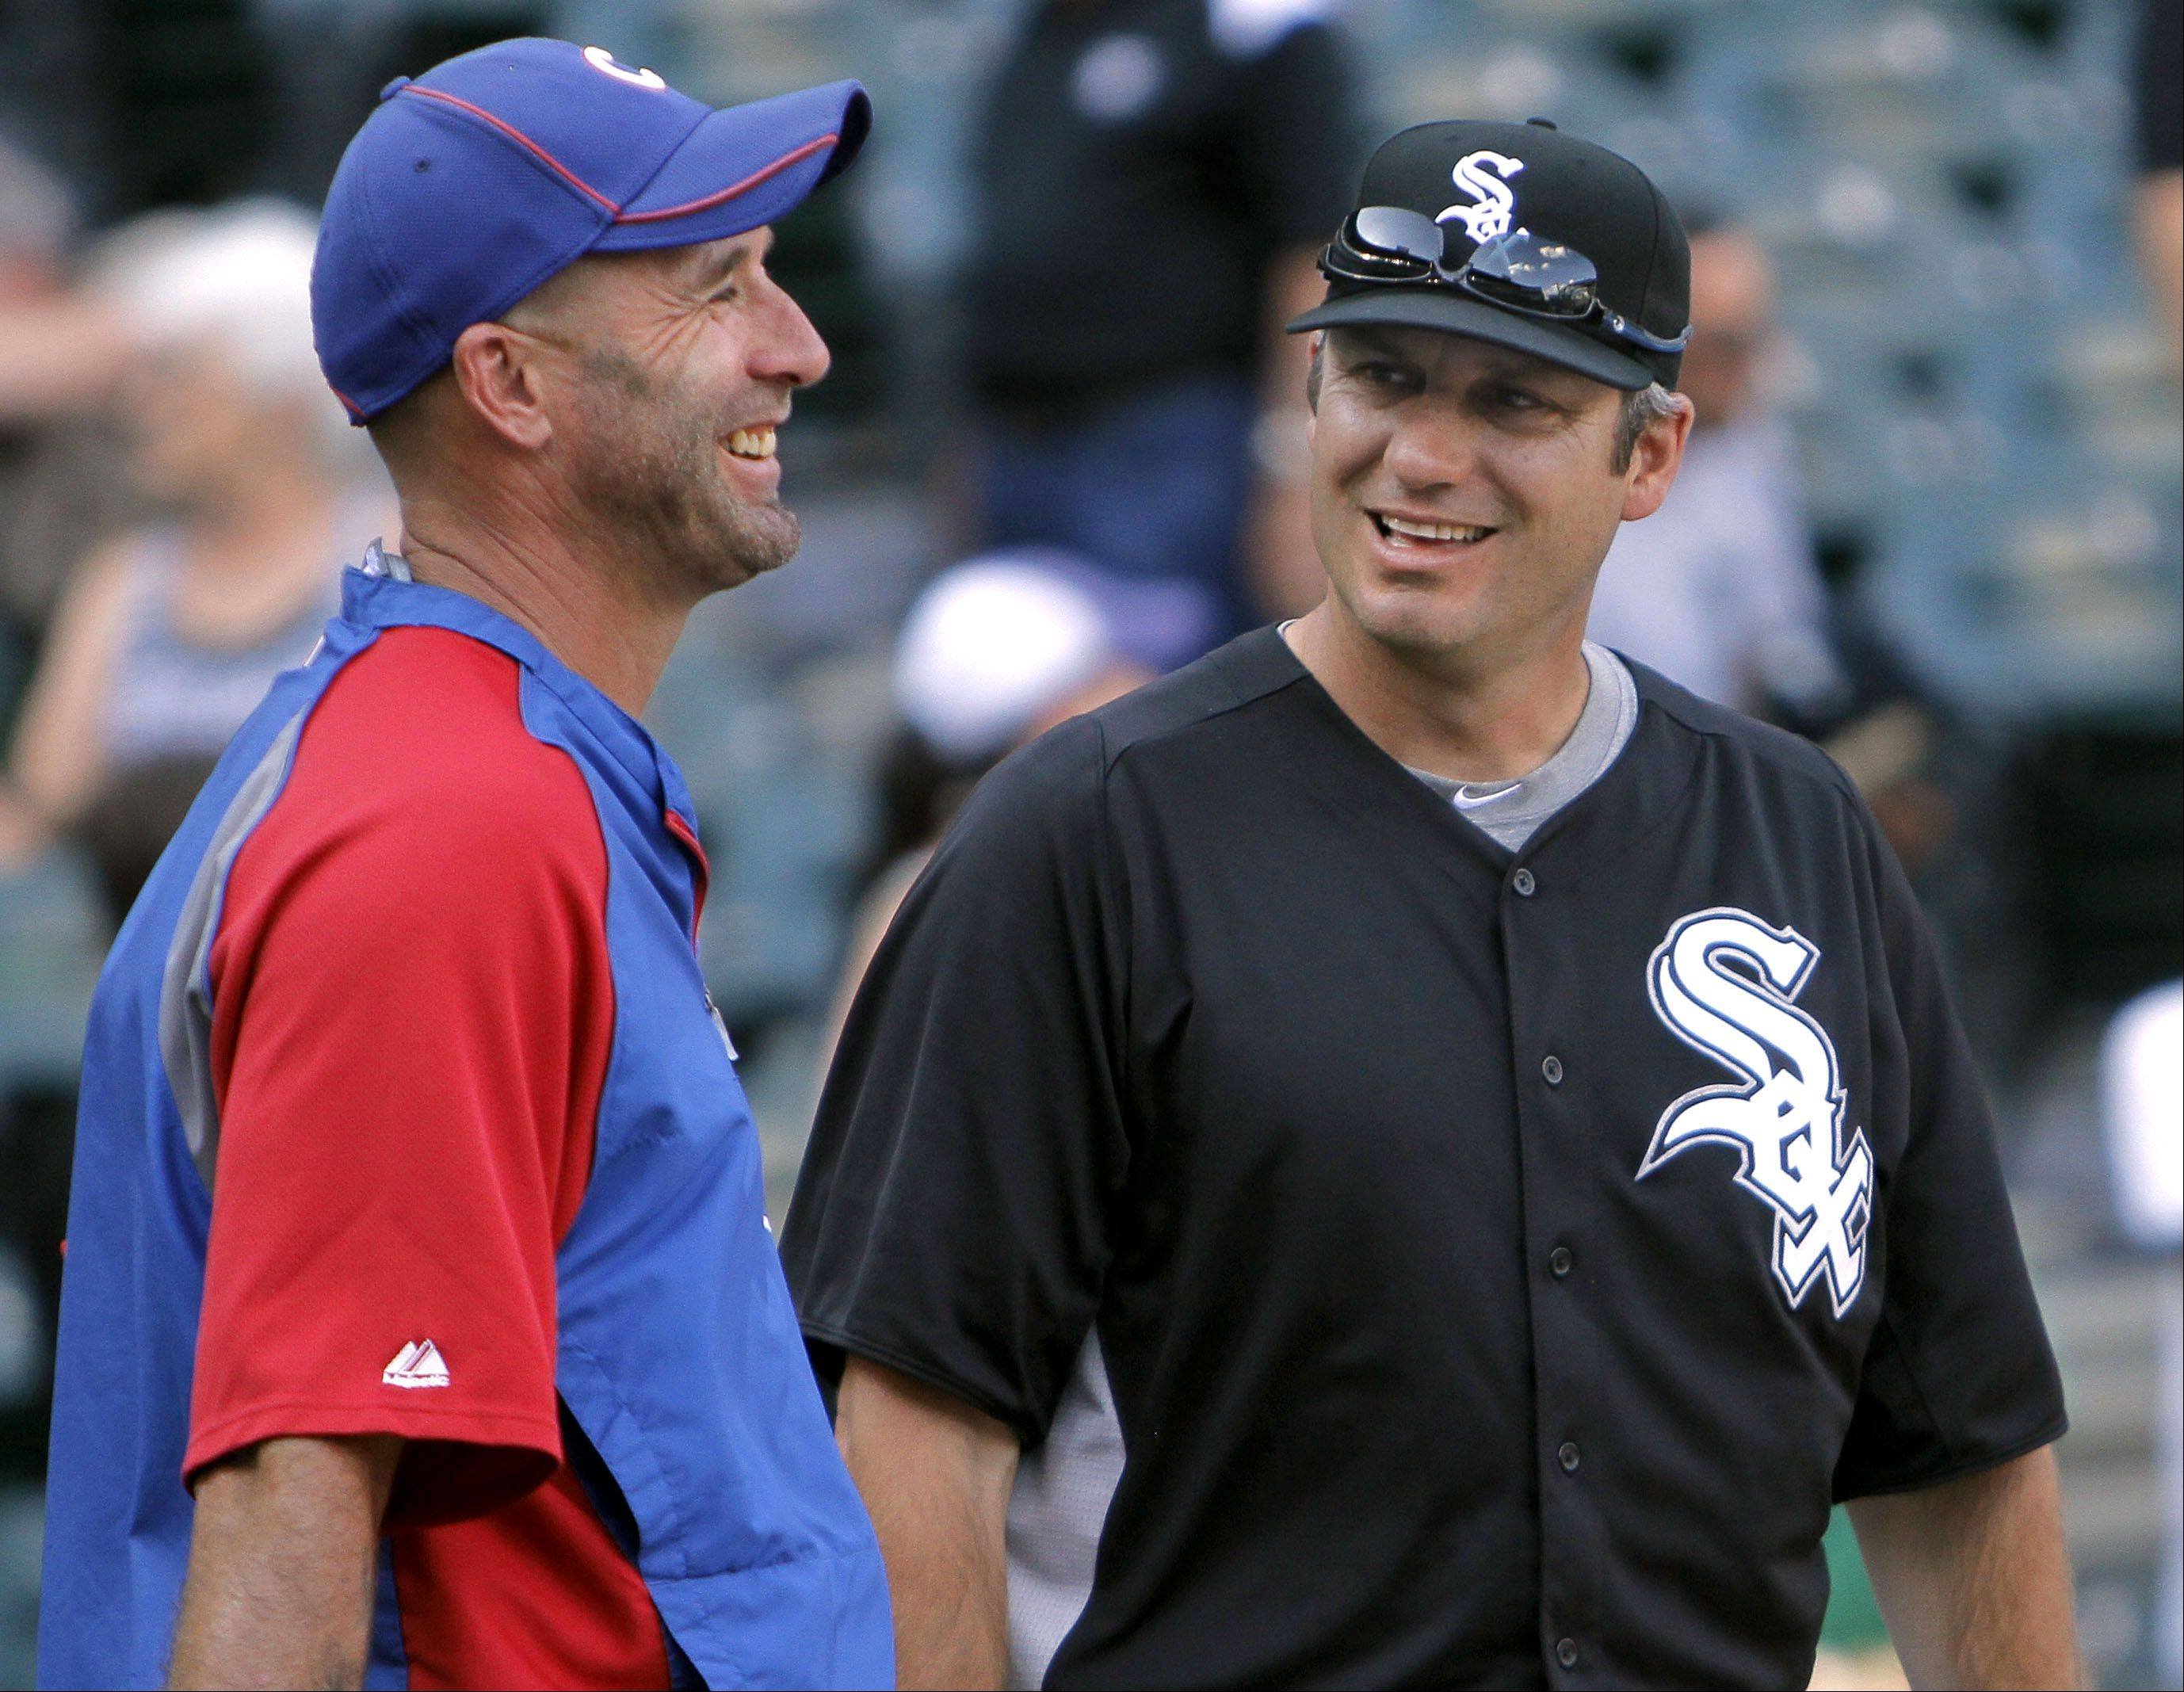 Cubs manager Dale Sveum, left, and White Sox manager Robin Ventura chat before Game 2 of the city series last season at U.S. Cellular Field.